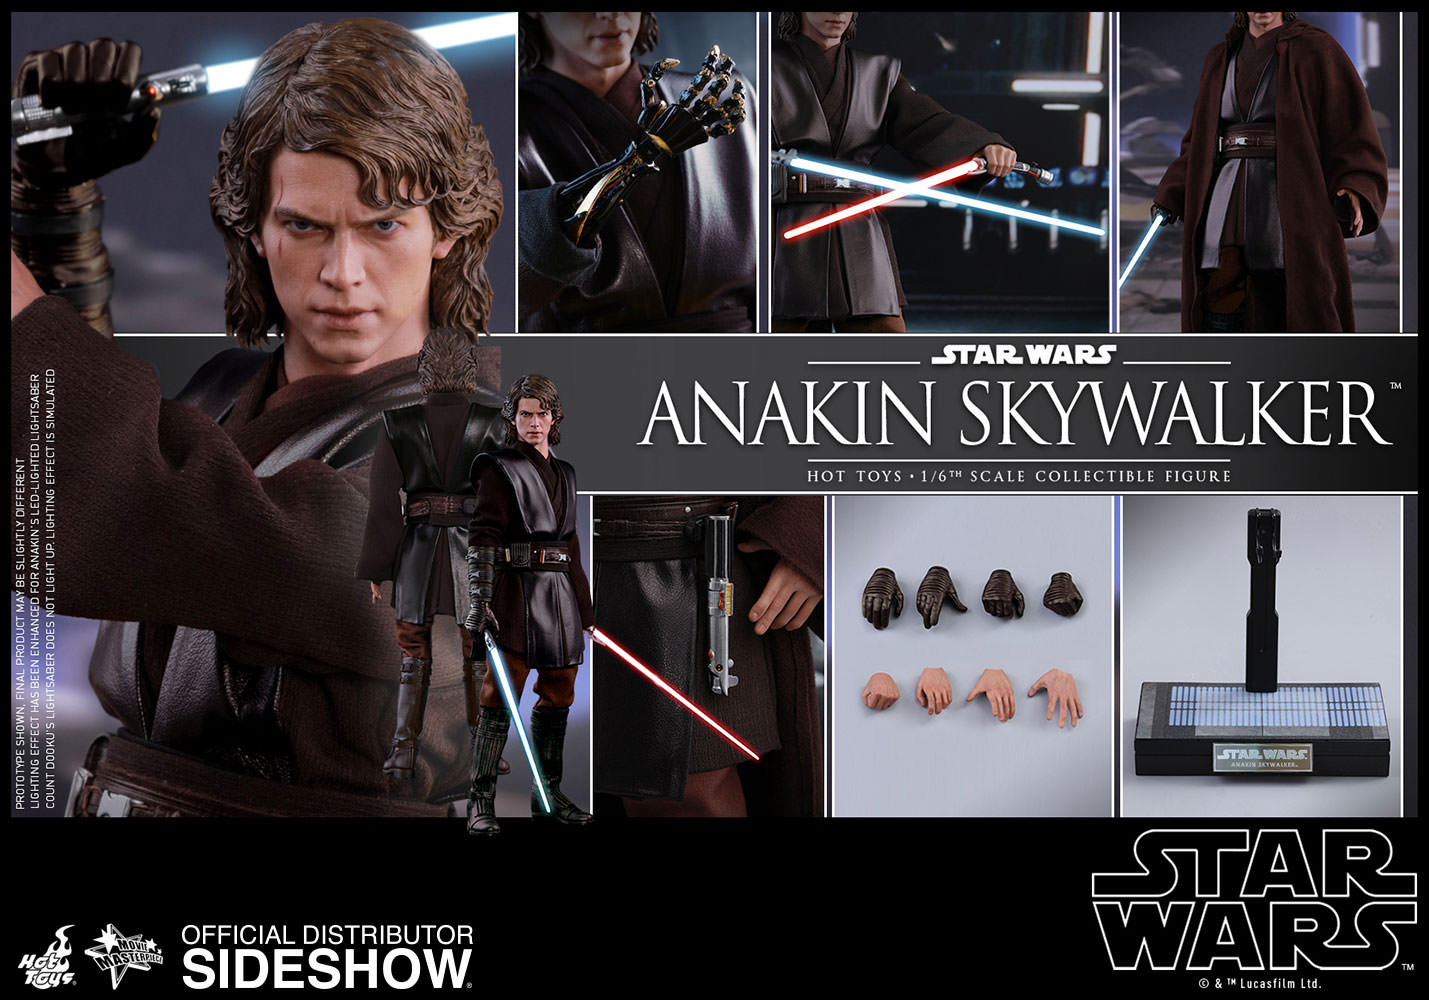 Star Wars Anakin Skywalker Sixth Scale Figure By Hot Toys Sideshow